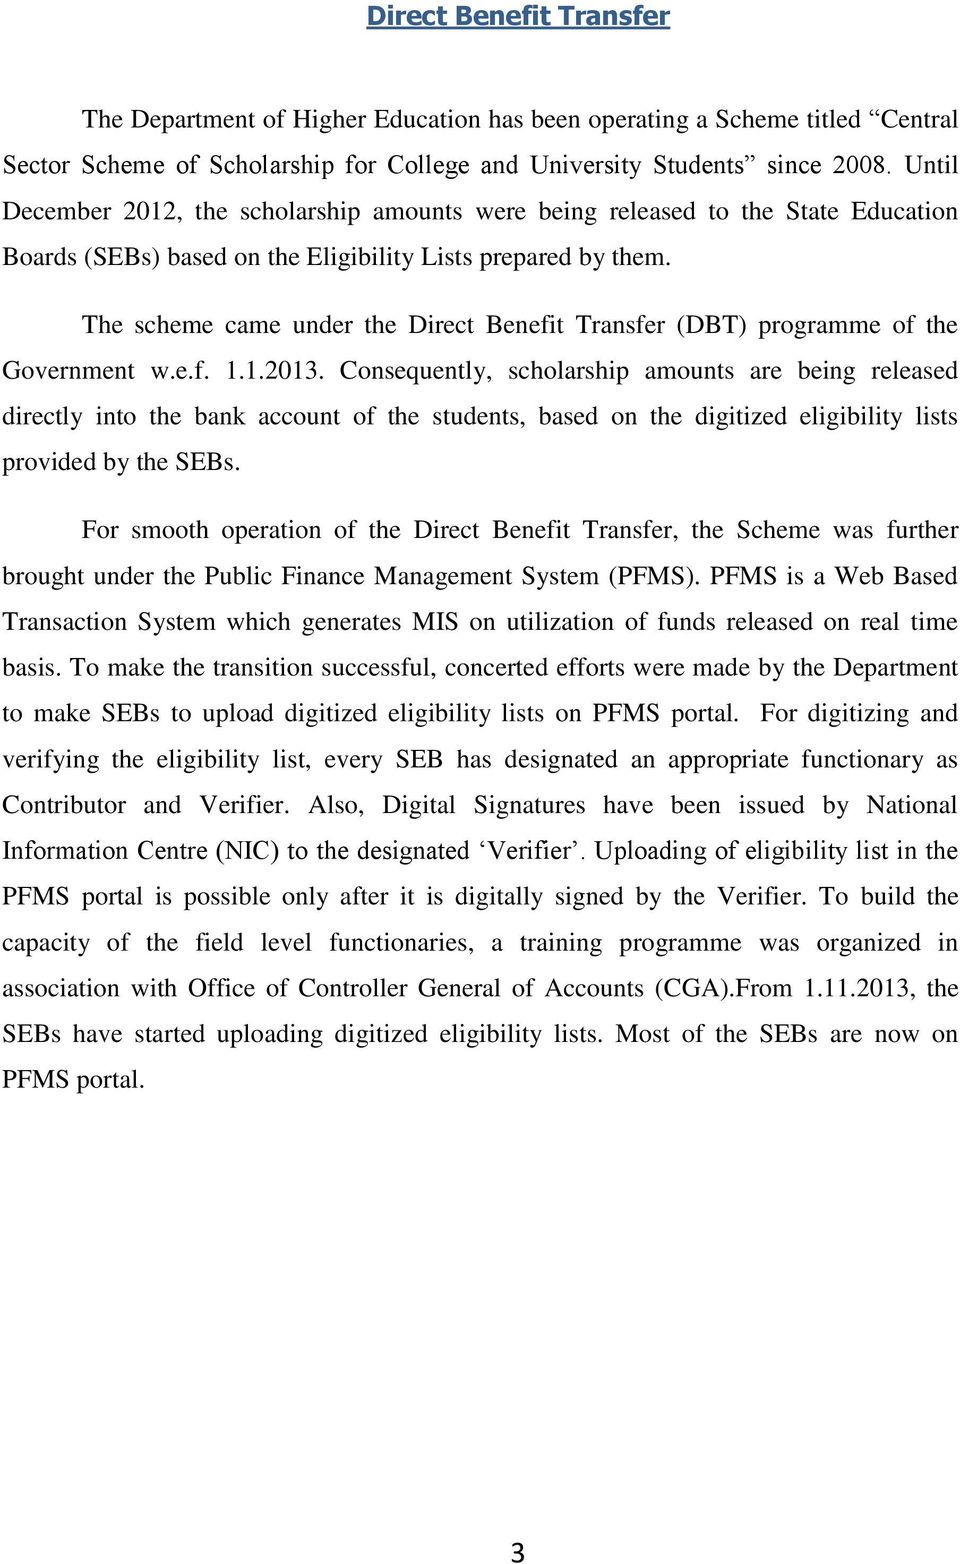 The scheme came under the Direct Benefit Transfer (DBT) programme of the Government w.e.f. 1.1.2013.